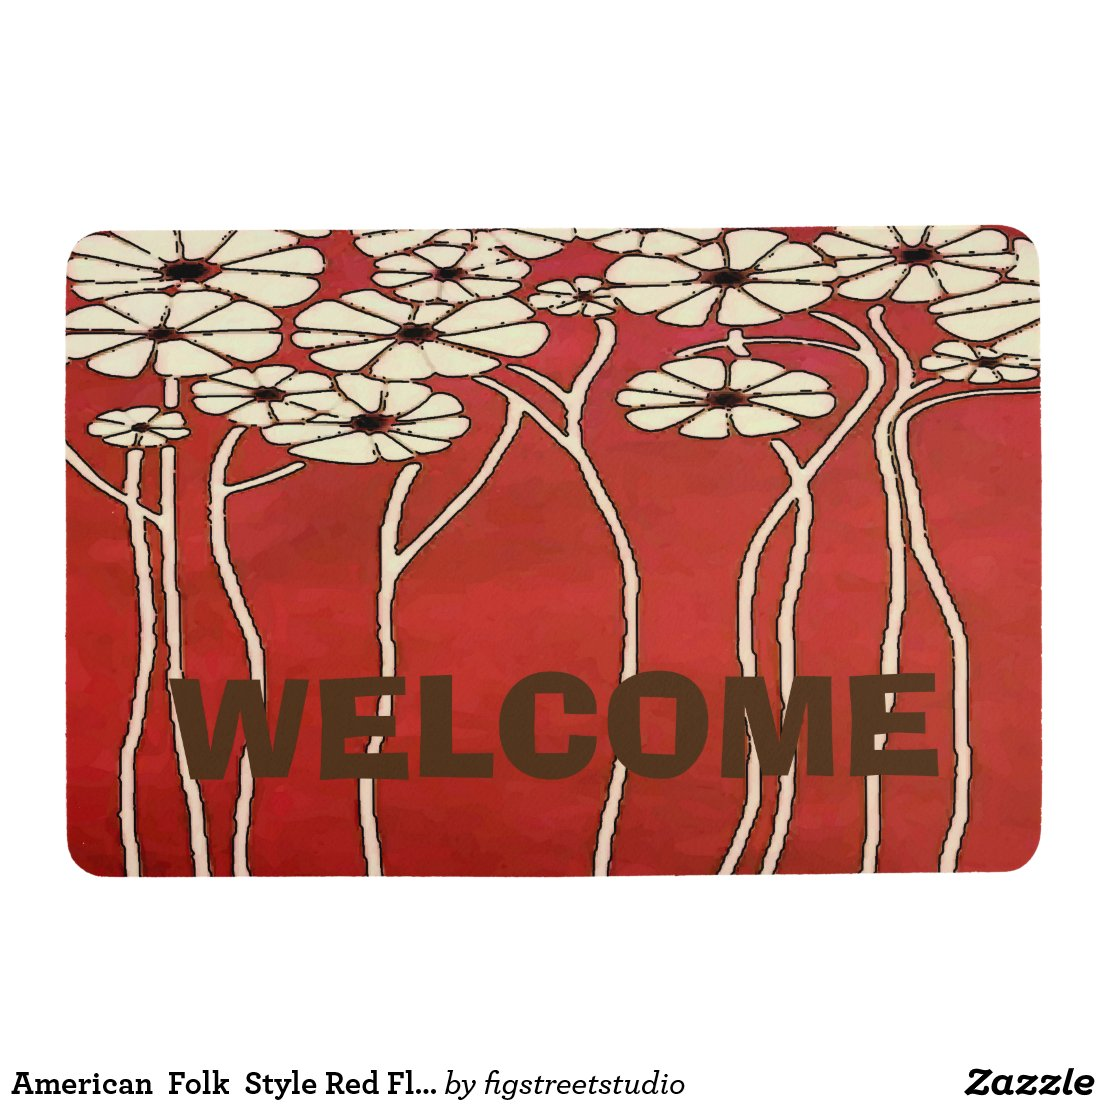 American Folk Style Red Flowers